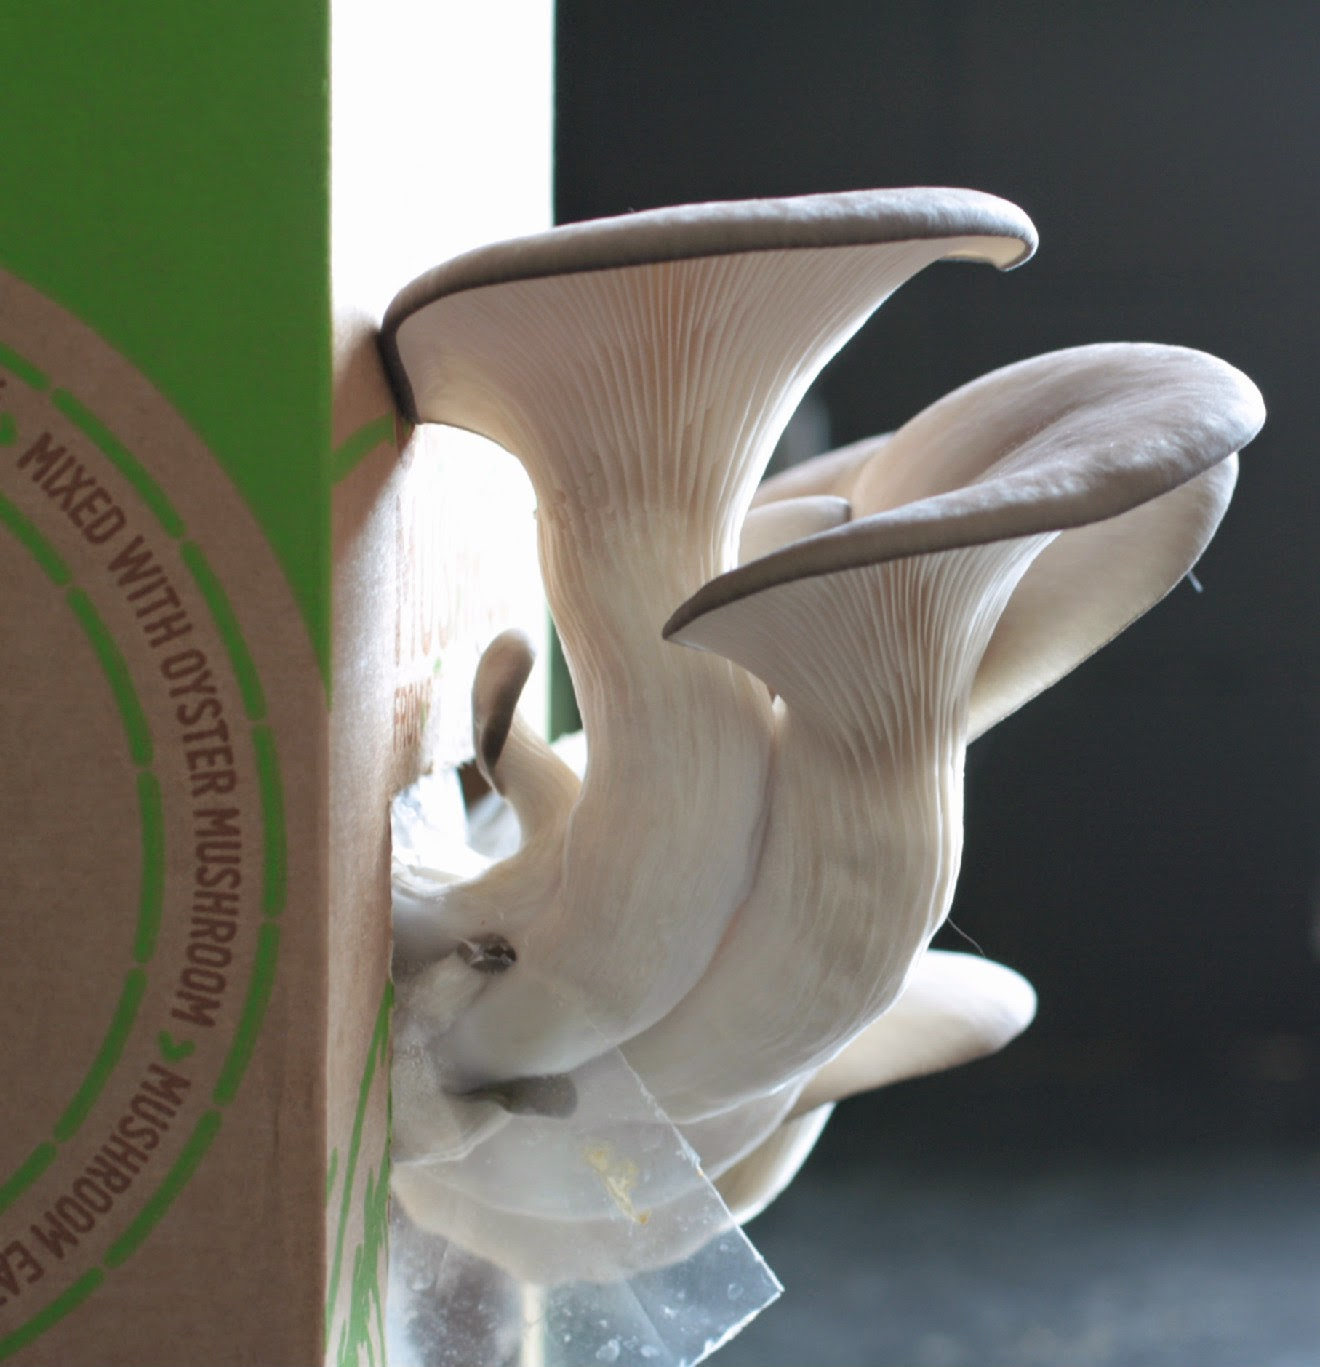 GroCycle use waste coffee grounds to grow delicious gourmet oyster mushrooms and now with one of their kits you can enjoy fresh mushrooms in your own kitchen